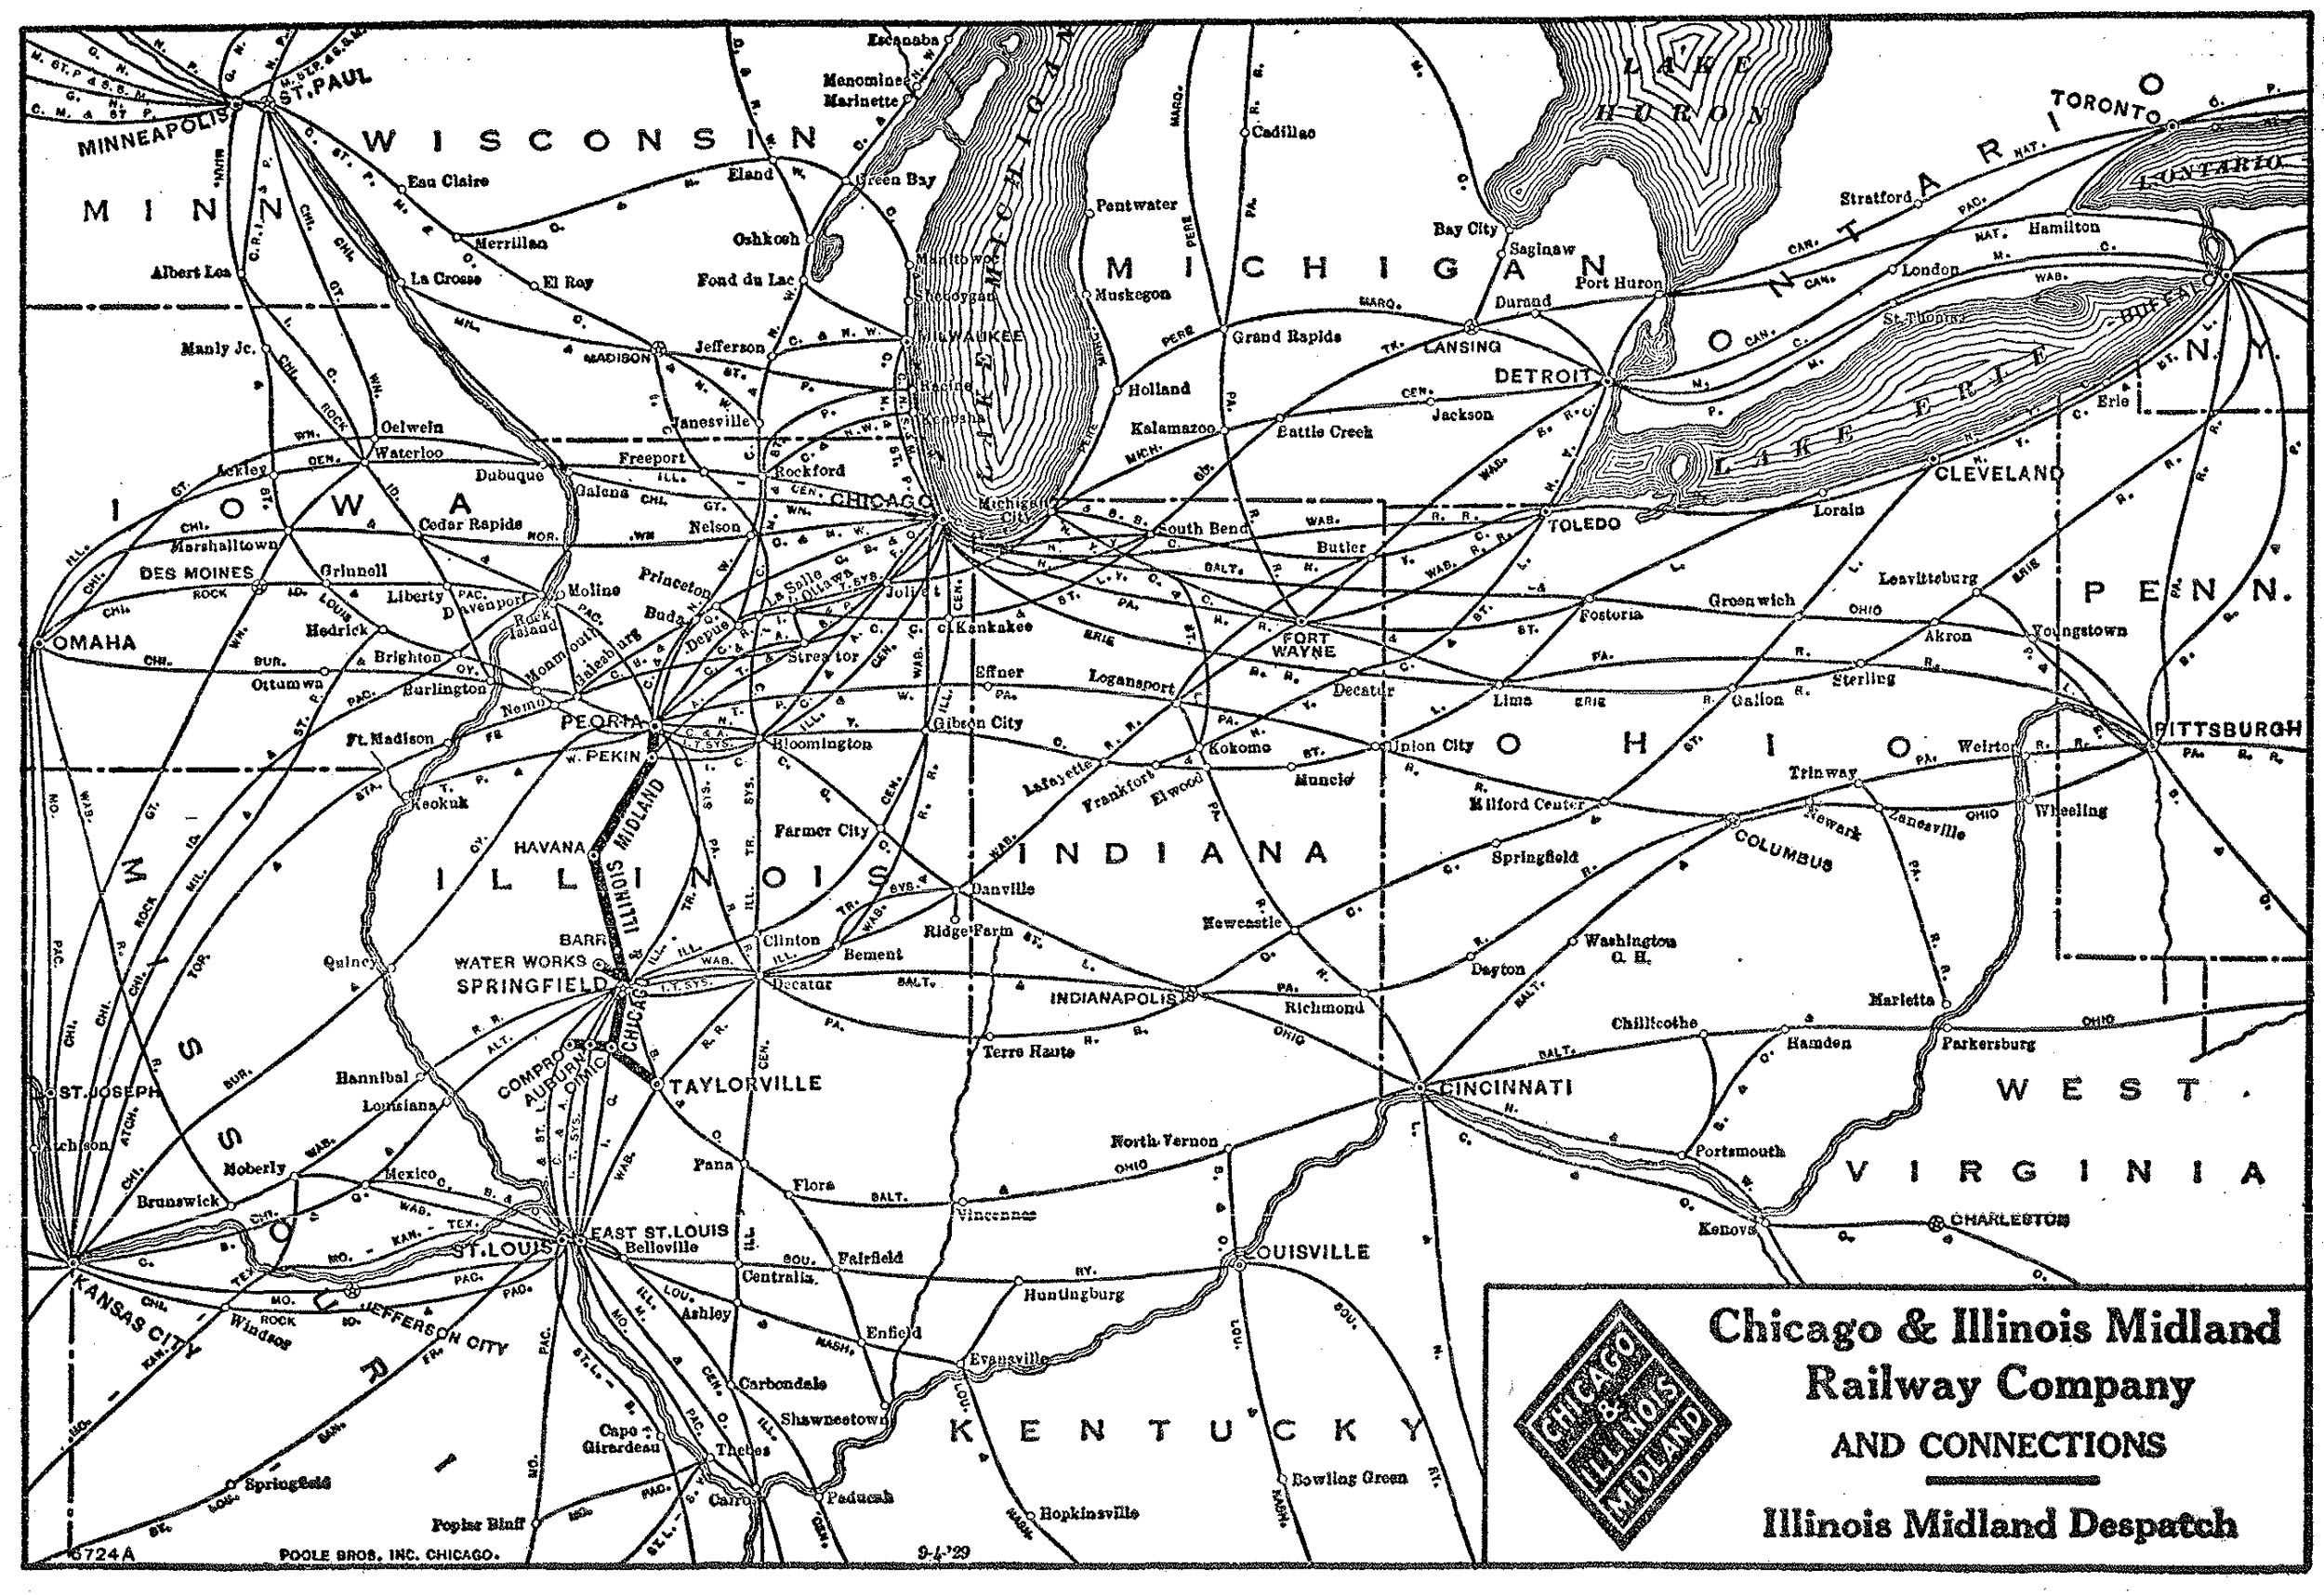 Chicago and Illinois Midland Railway on baltimore and ohio railroad, norfolk southern railway, illinois mining map, illinois river map, csx transportation, illinois terminal 2301, grand trunk western railroad, illinois michigan canal trail map, canadian national railway company, lehigh valley railroad, illinois high speed rail map, southern railway, central illinois map, great northern railway, union pacific railroad, atchison, topeka and santa fe railway, illinois pennsylvania map, city of new orleans, soo line railroad, chicago, rock island and pacific railroad, northbrook mall map, burlington northern railroad, illinois western railroad, mississippi rail map, illinois city boundary map, illinois america map, illinois train map, old chicago downtown map, kansas city southern railway, dwight nd map, louisville and nashville railroad, city of miami, illinois county map, illinois central railroad, new york central railroad, illinois highway map, illinois map marion il, southern pacific railroad, pennsylvania railroad, air force bases in illinois map,